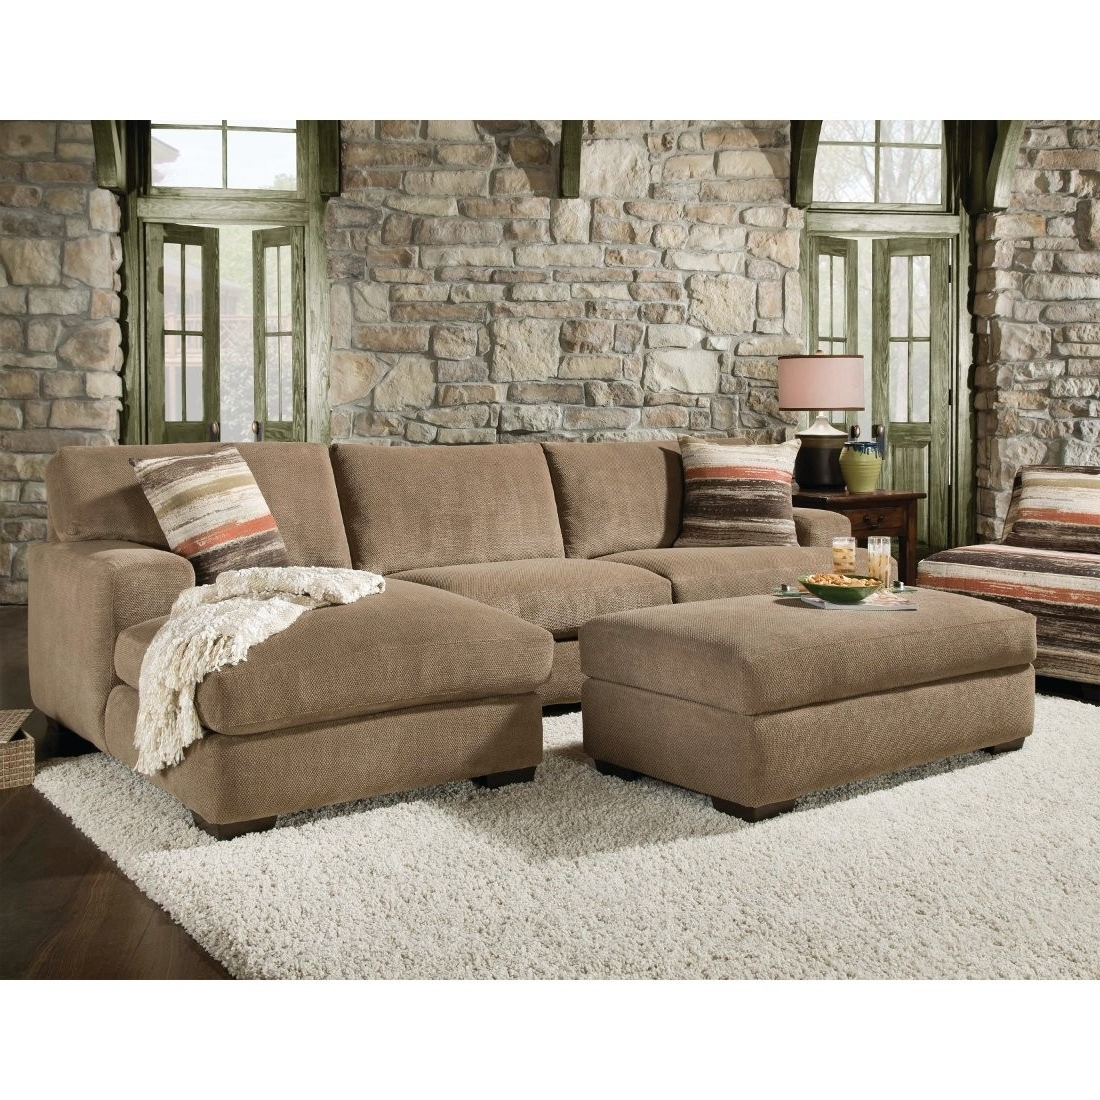 Preferred Small Sectional Sofas With Chaise And Ottoman within Beautiful Sectional Sofa With Chaise And Ottoman Pictures